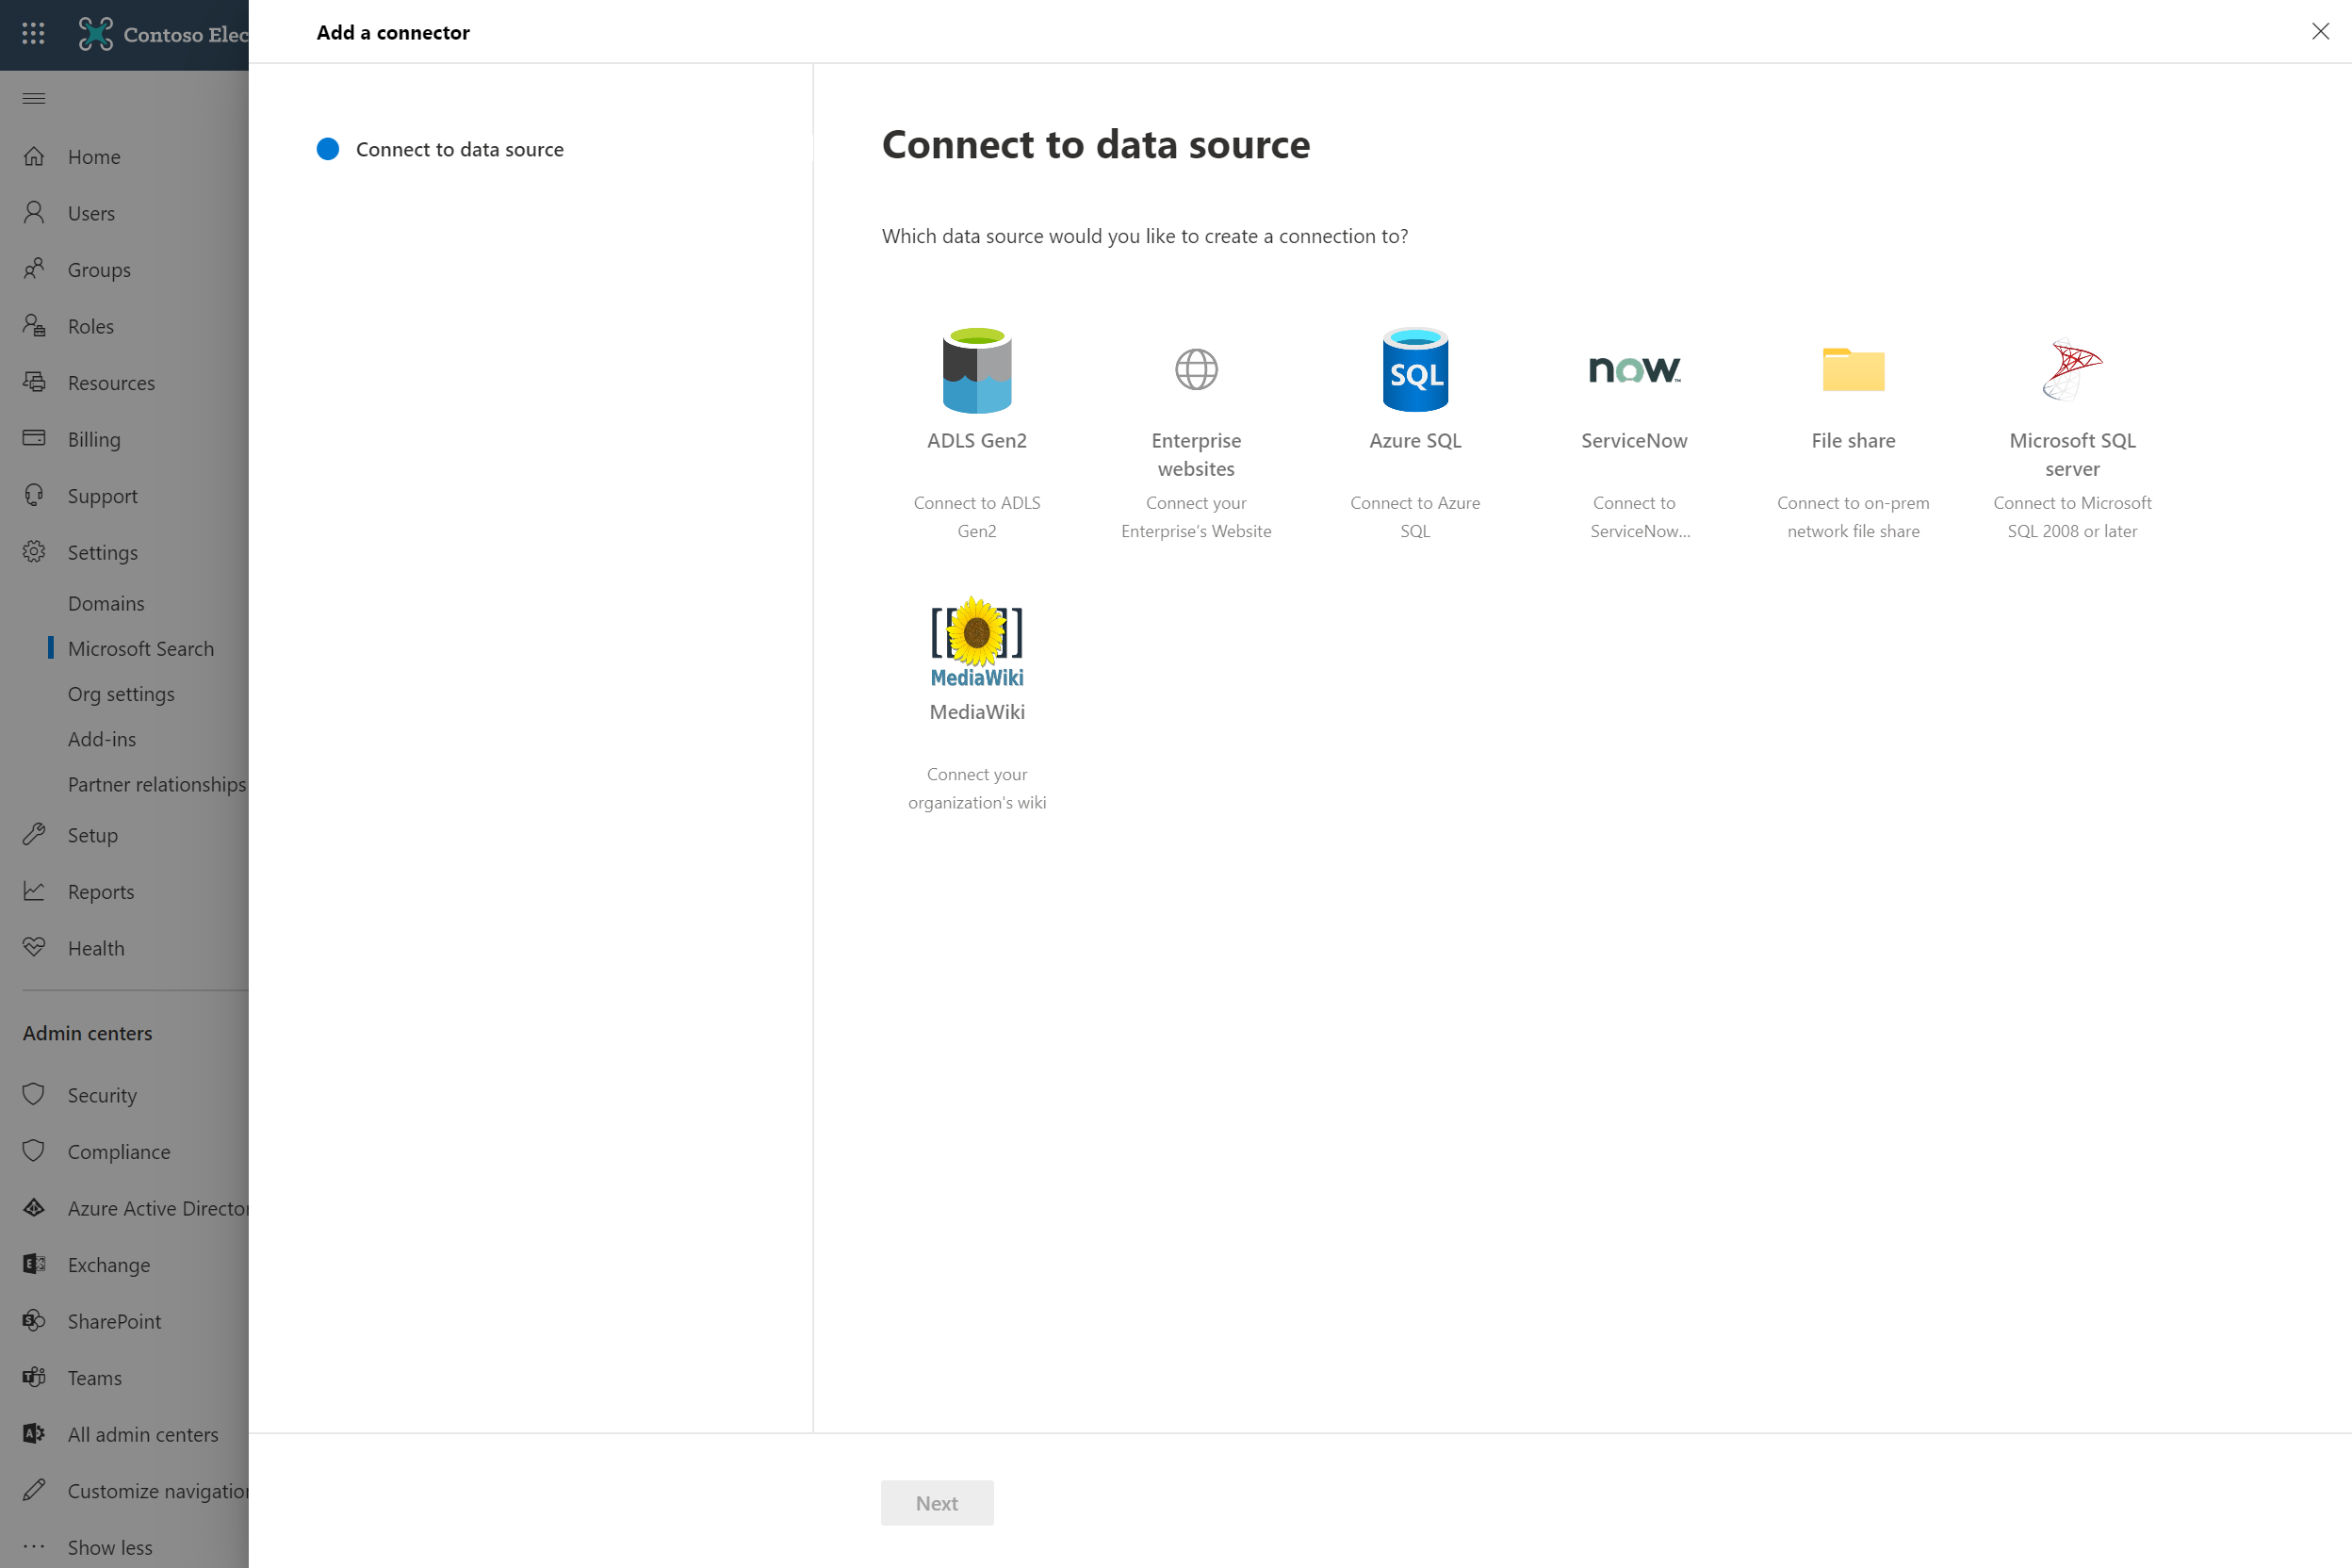 An image showing how Microsoft Search indexes all your Microsoft 365 data.